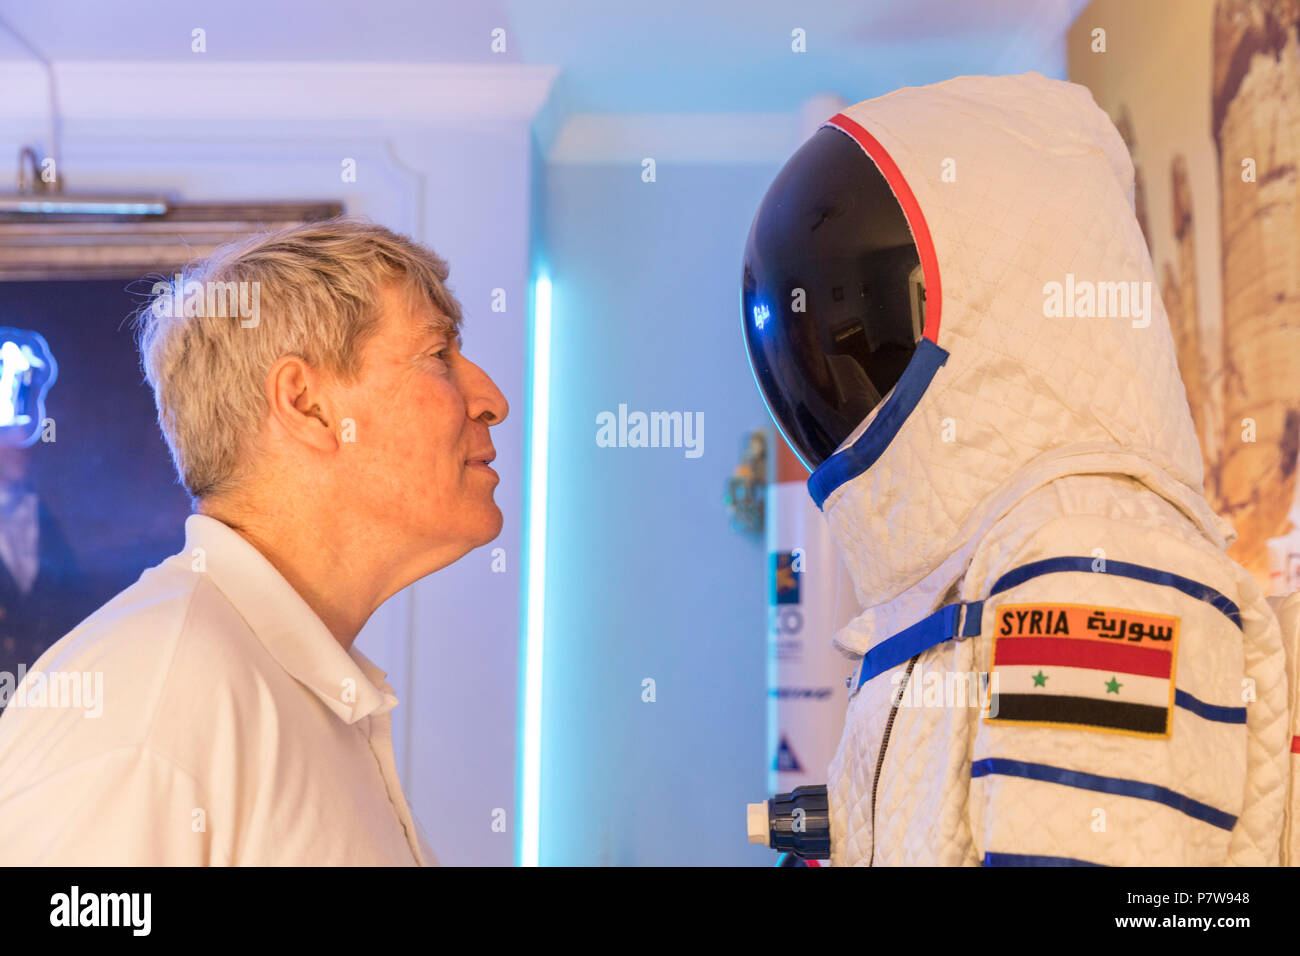 London, 8th July 2018.The British Interplanetary Society's Alistair Scott looks at the Syrian cosmonaut in the installation 'Space Refugee' about first Syrian cosmonaut Muhammed Faris. Art Night 2018 features 12 special projects curated by Hayward Gallery and over 50 presented in Art Night Open curated by cultural organisations and creatives throughout South Bank, Vauxhall and Nine Elms, on Saturday 7th and Sunday 8th July. Credit: Imageplotter News and Sports/Alamy Live News - Stock Image